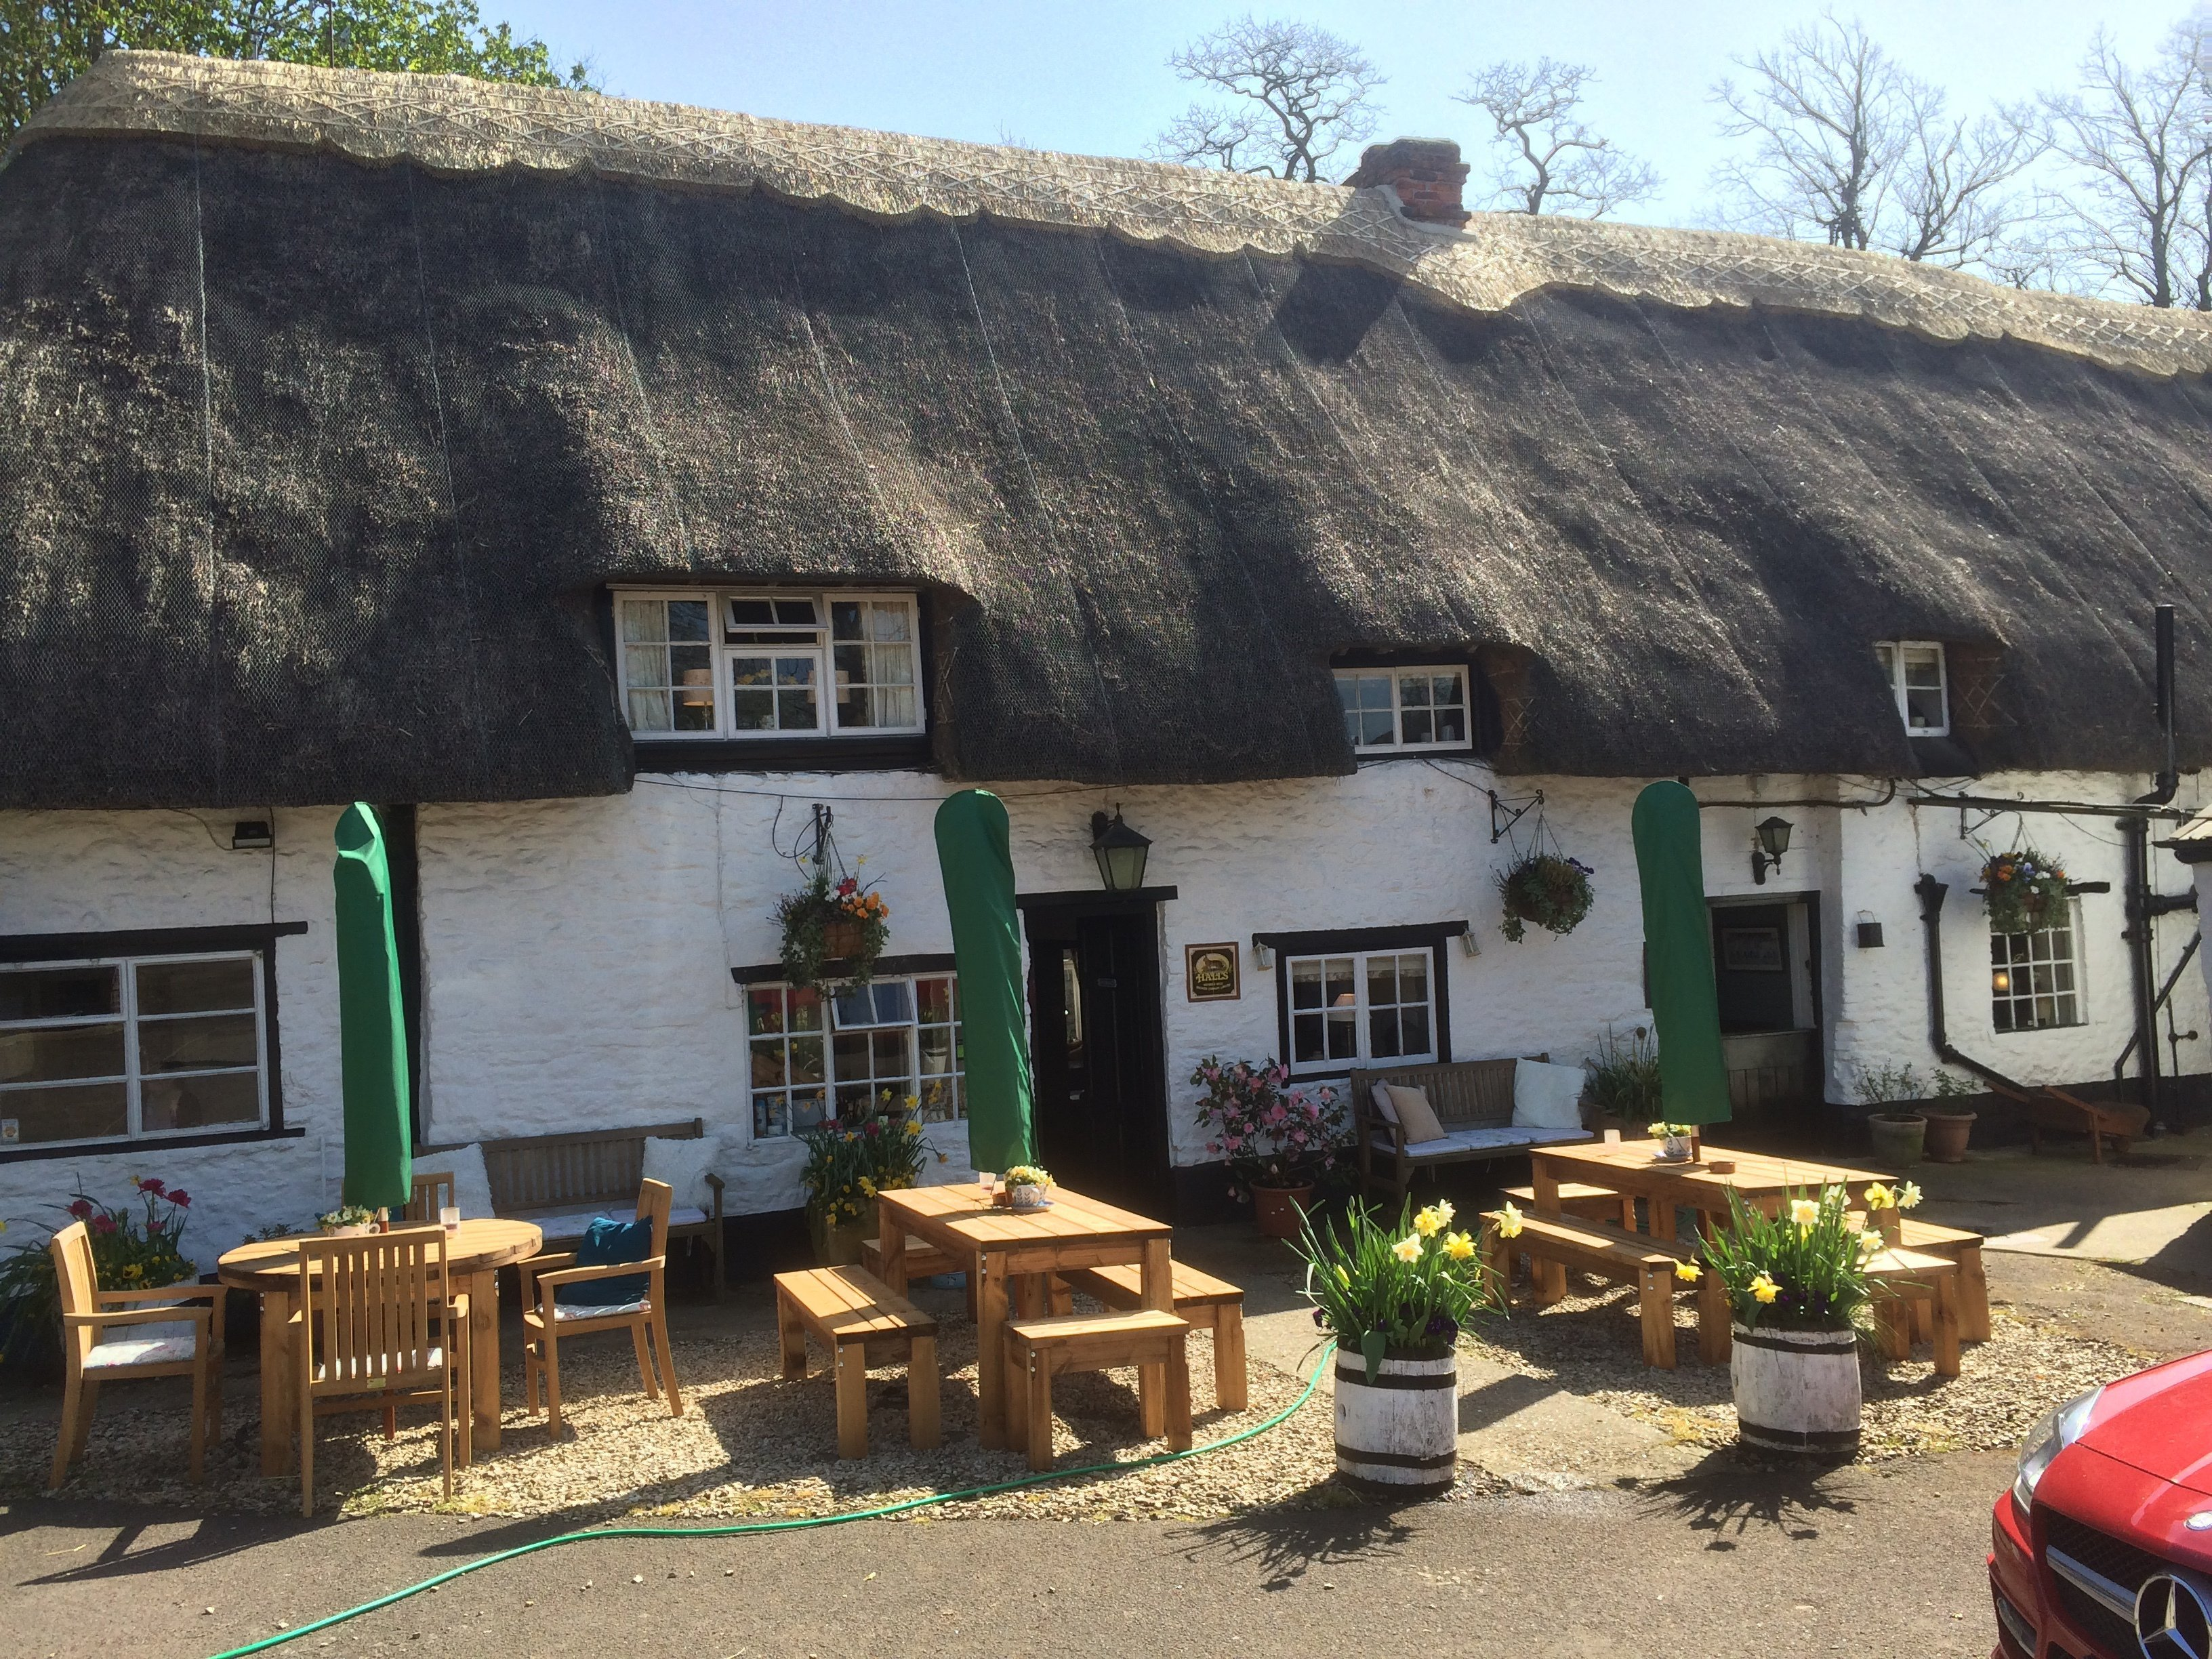 Thatched roof bar